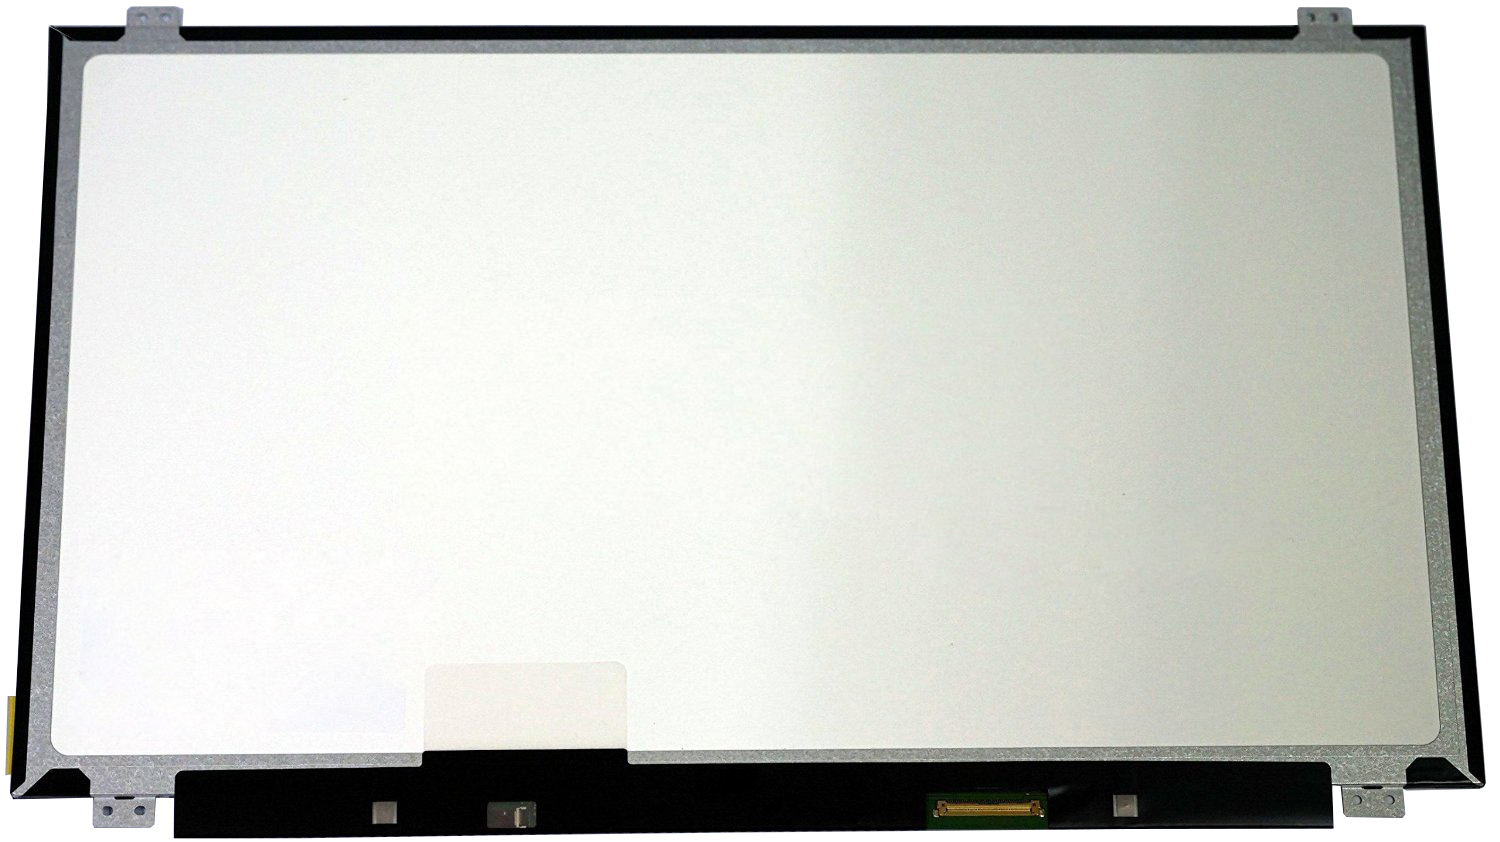 QuYing Laptop LCD Screen for ACER ASPIRE E1-430PG E1-432 E1-432G E1-470 E1-470G E1-472 E1-472G SERIES (14.0 inch 1366x768 30pin) quying laptop lcd screen for acer extensa 5235 as5551 series 15 6 inch 1366x768 40pin tk